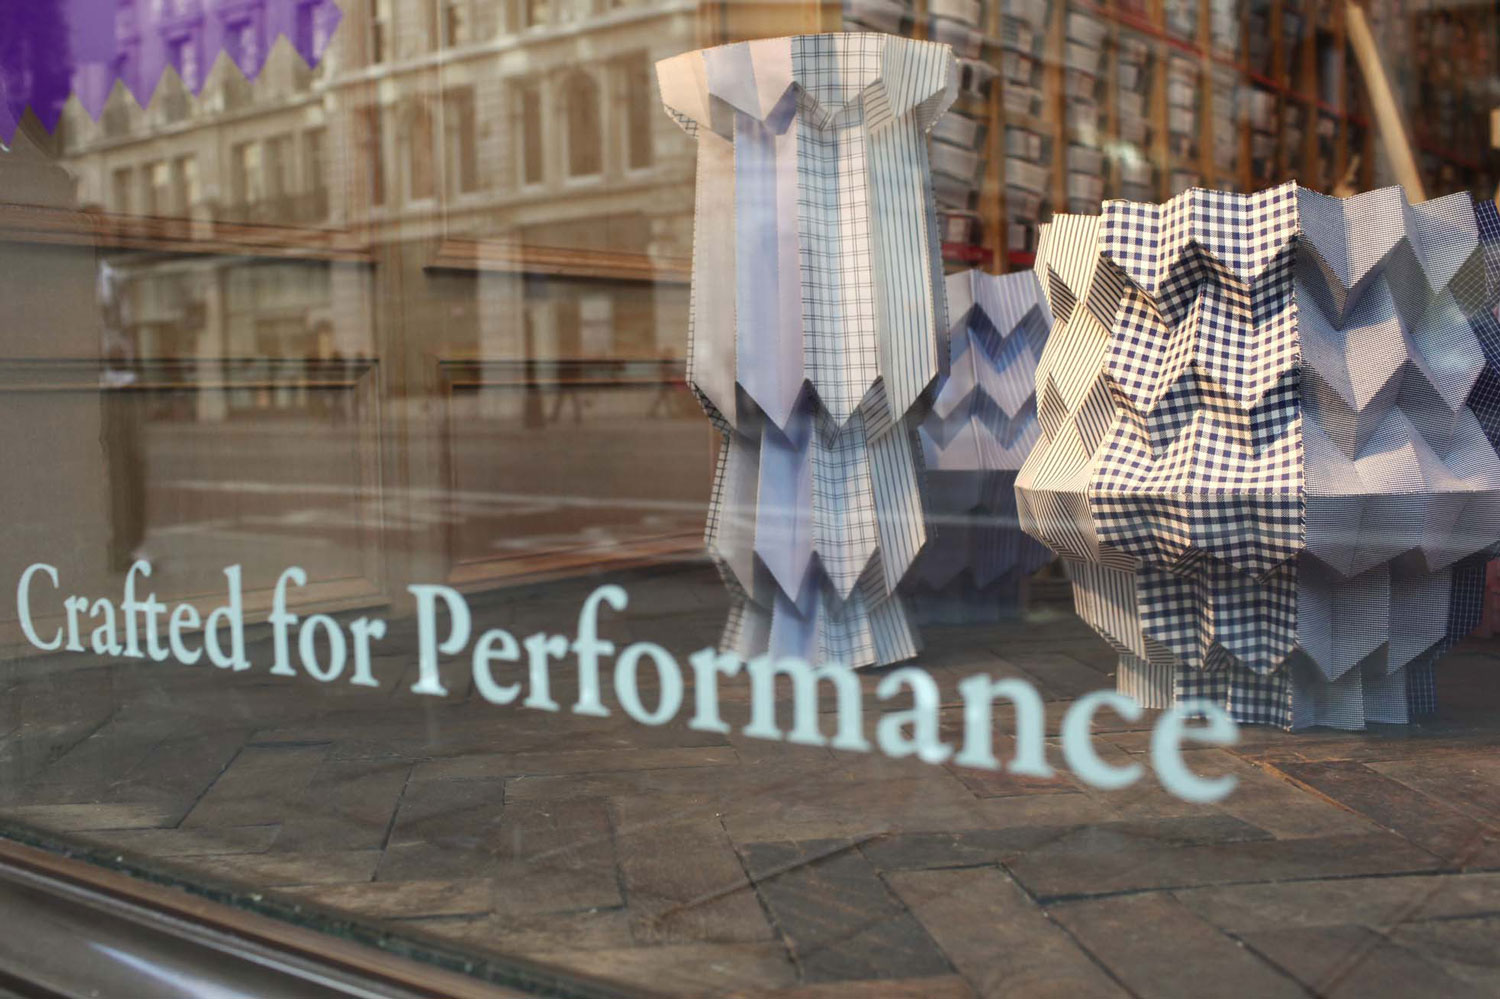 Riba london hit the shops on regent street london in may 2012 with a new